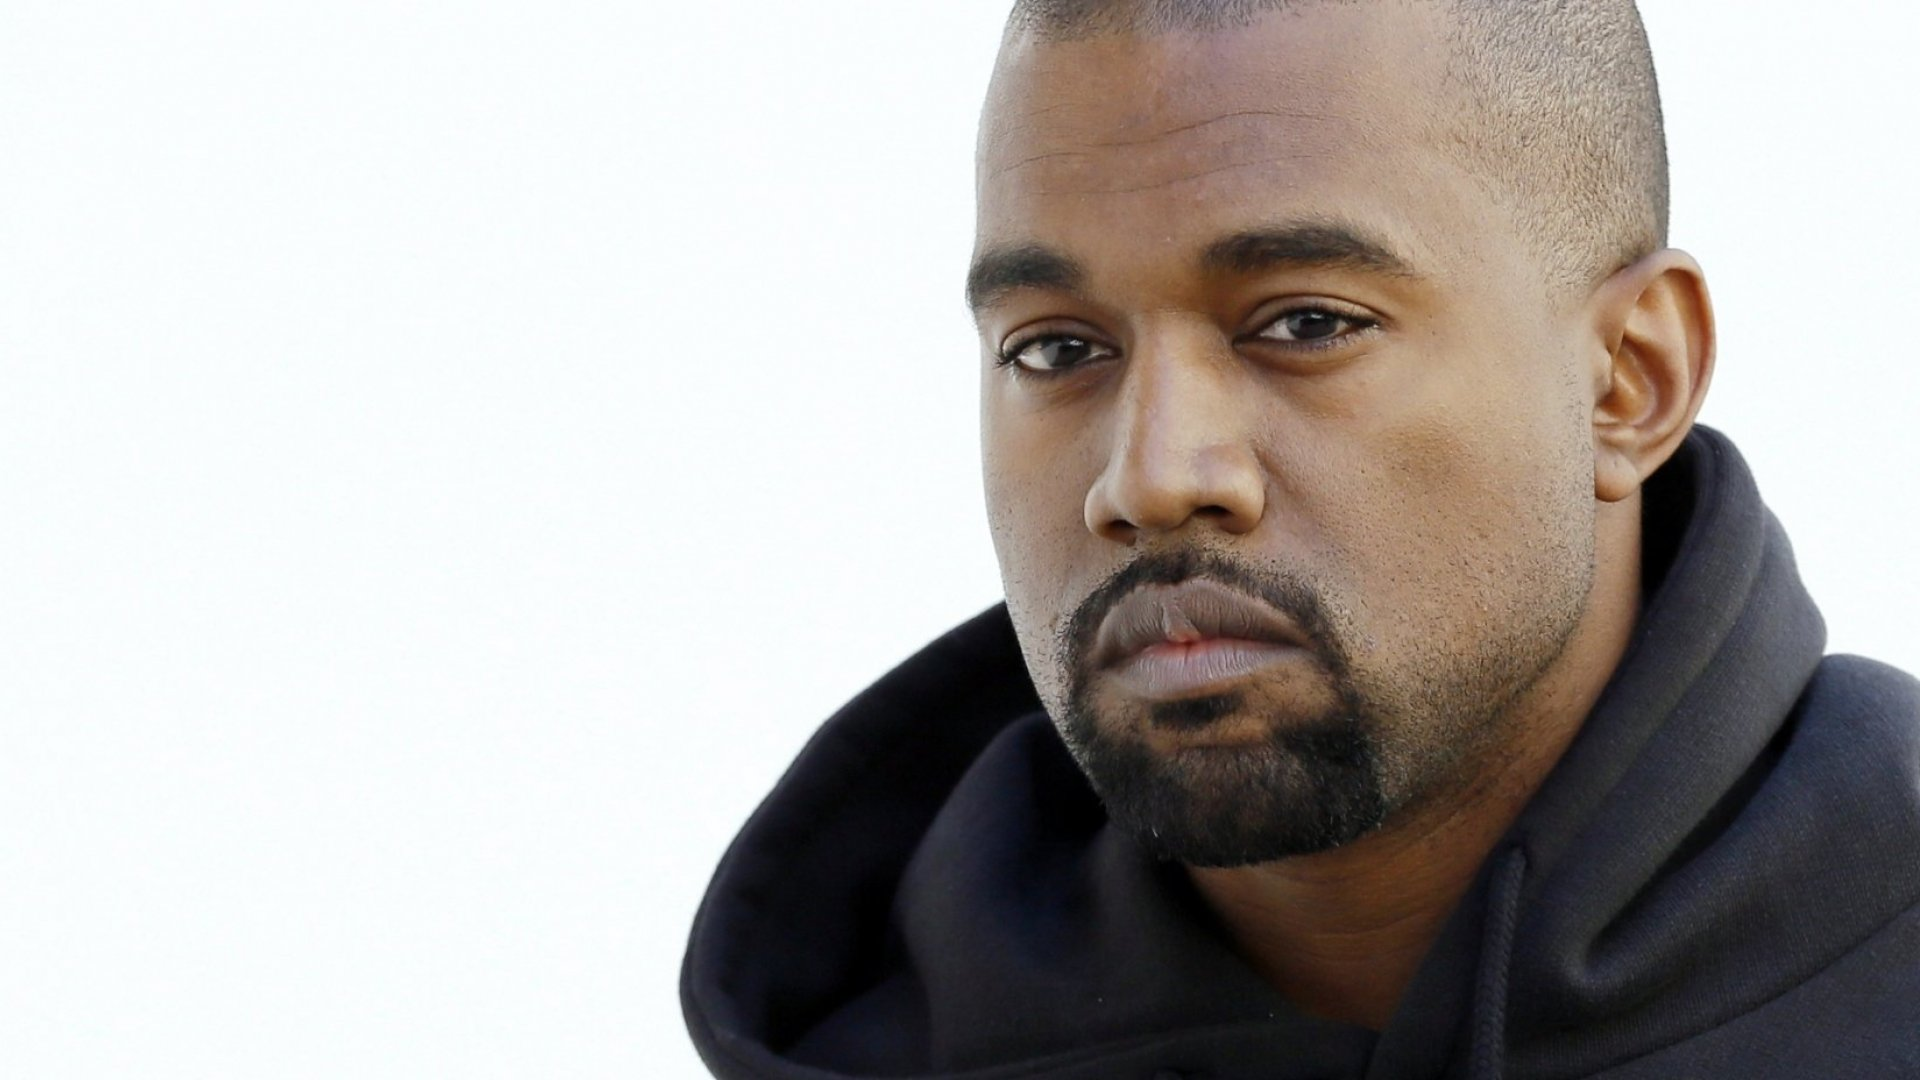 This Incredible Condition Might Be What Makes Kanye West and Others Successful